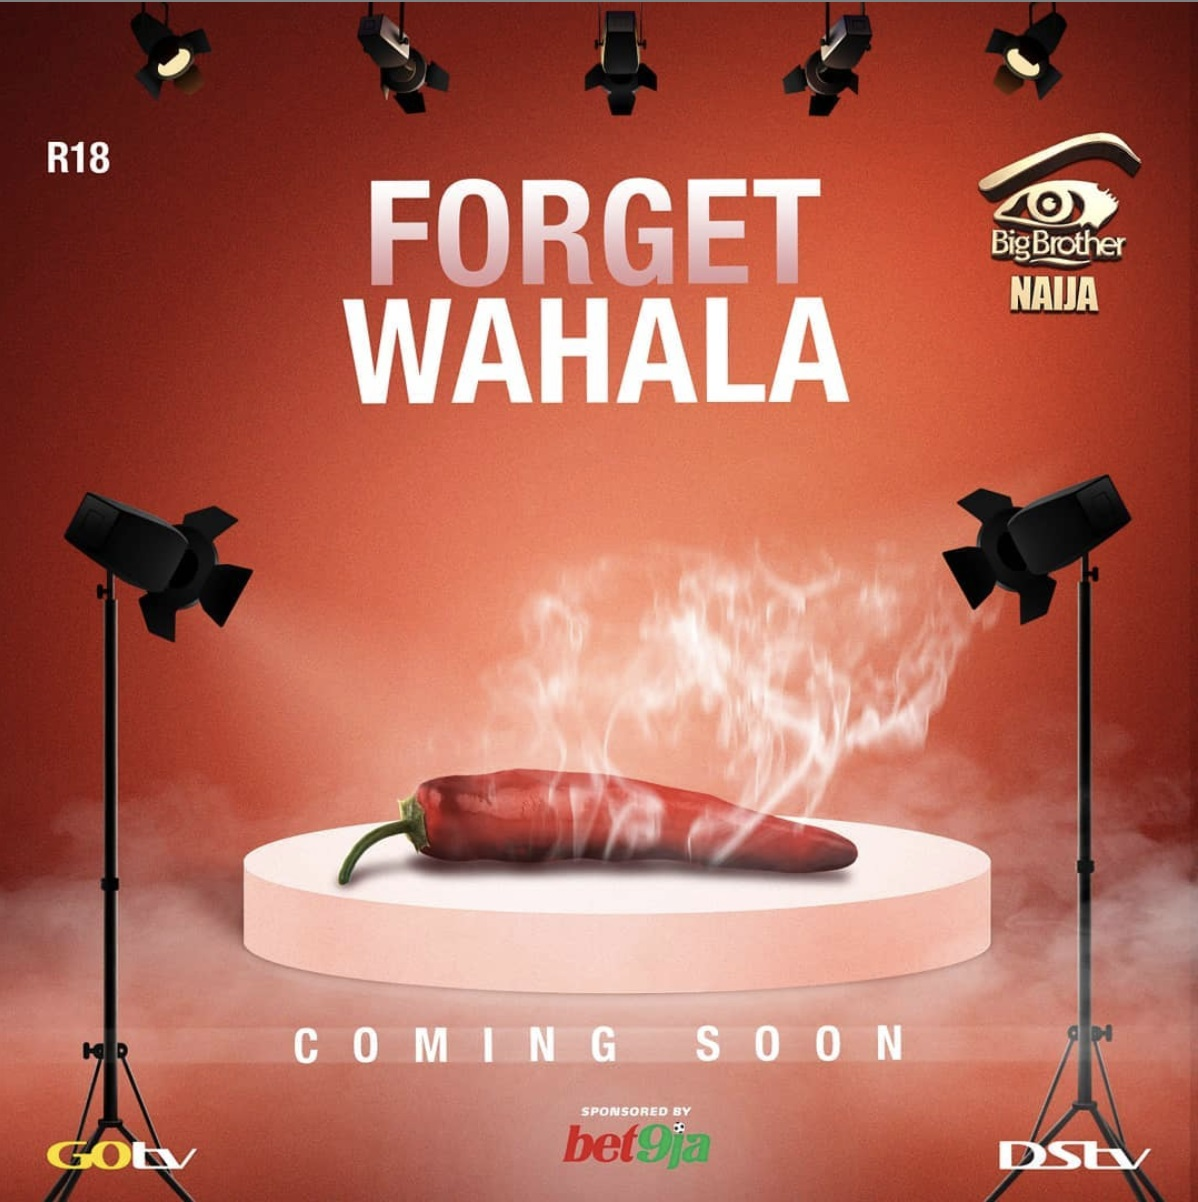 Big Brother Naija Season 4 Date